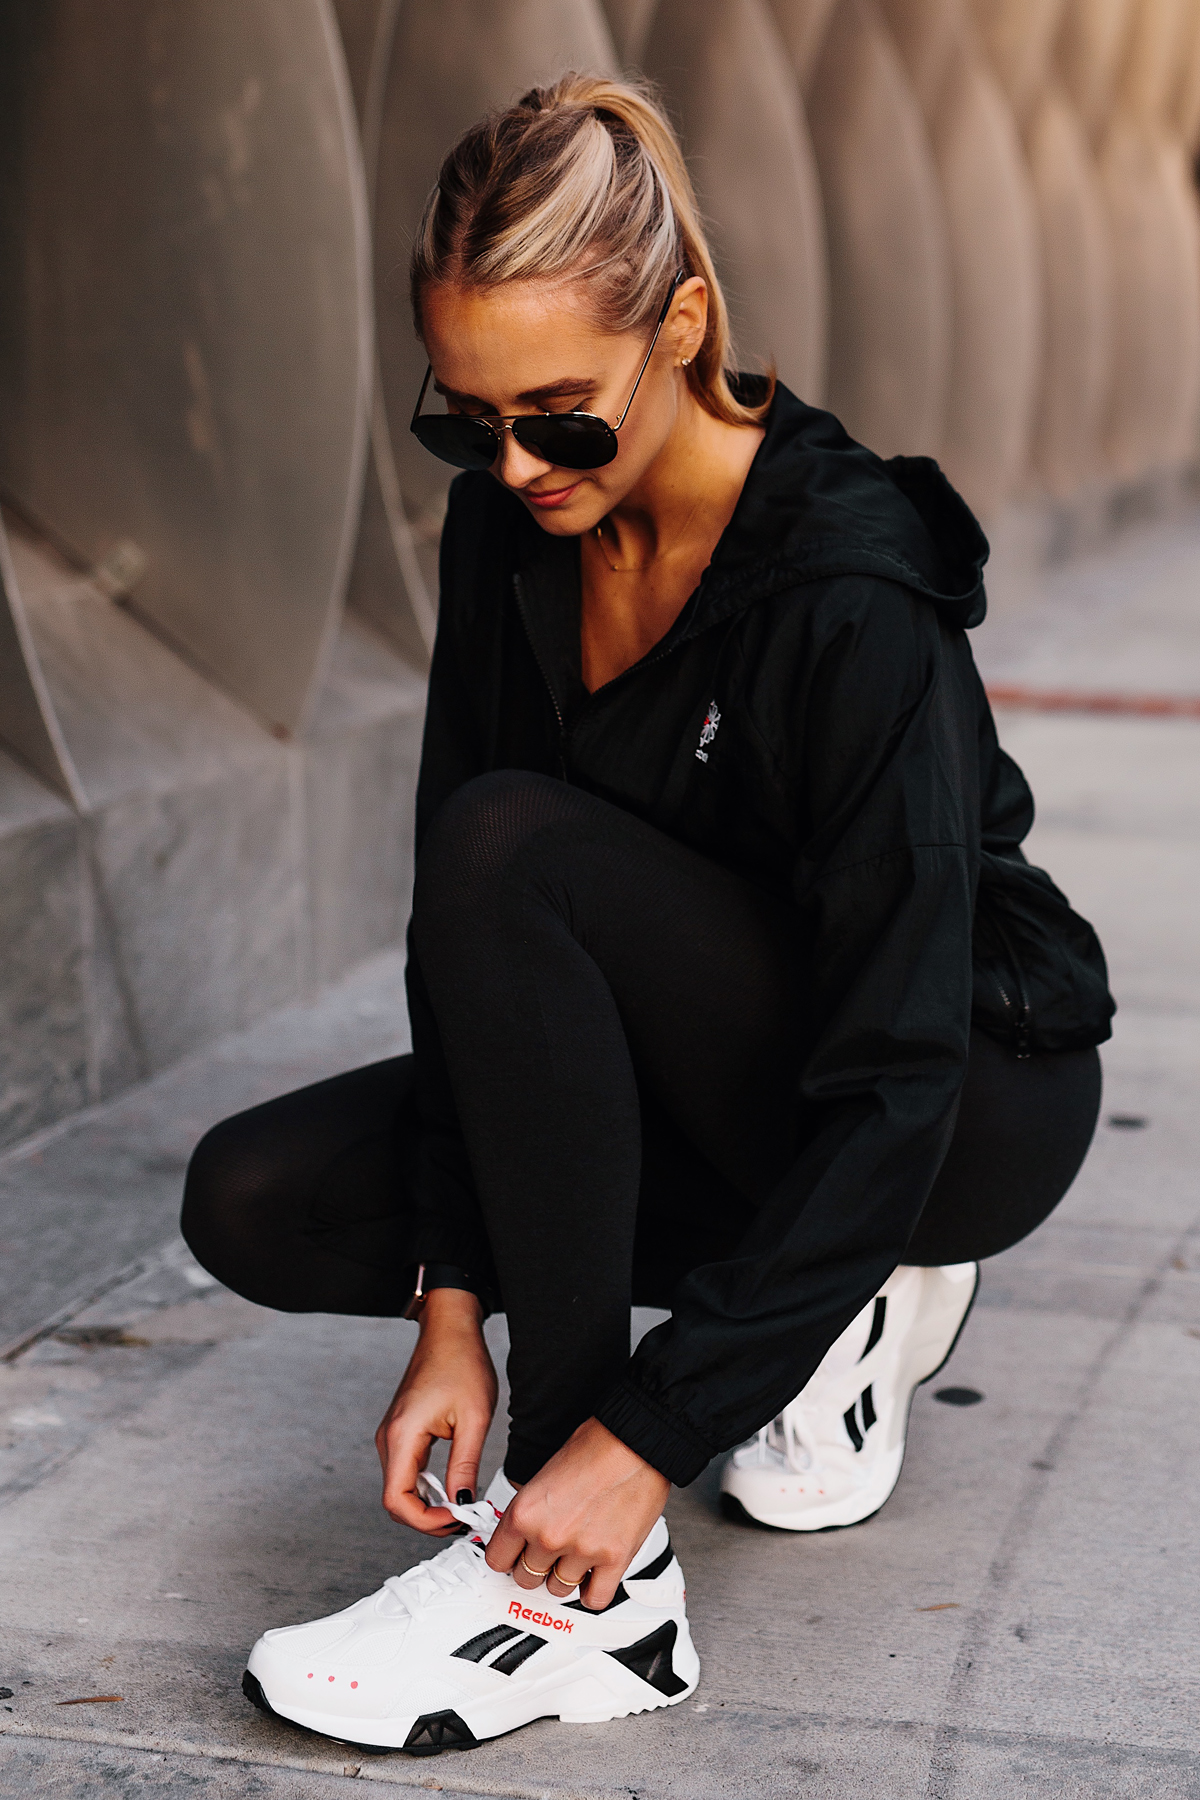 270fe089b912f Blonde Woman Wearing Reebok Black Windbreaker Reebok Black Leggings Reebok  Aztrek Sneakers White Fashion Jackson San